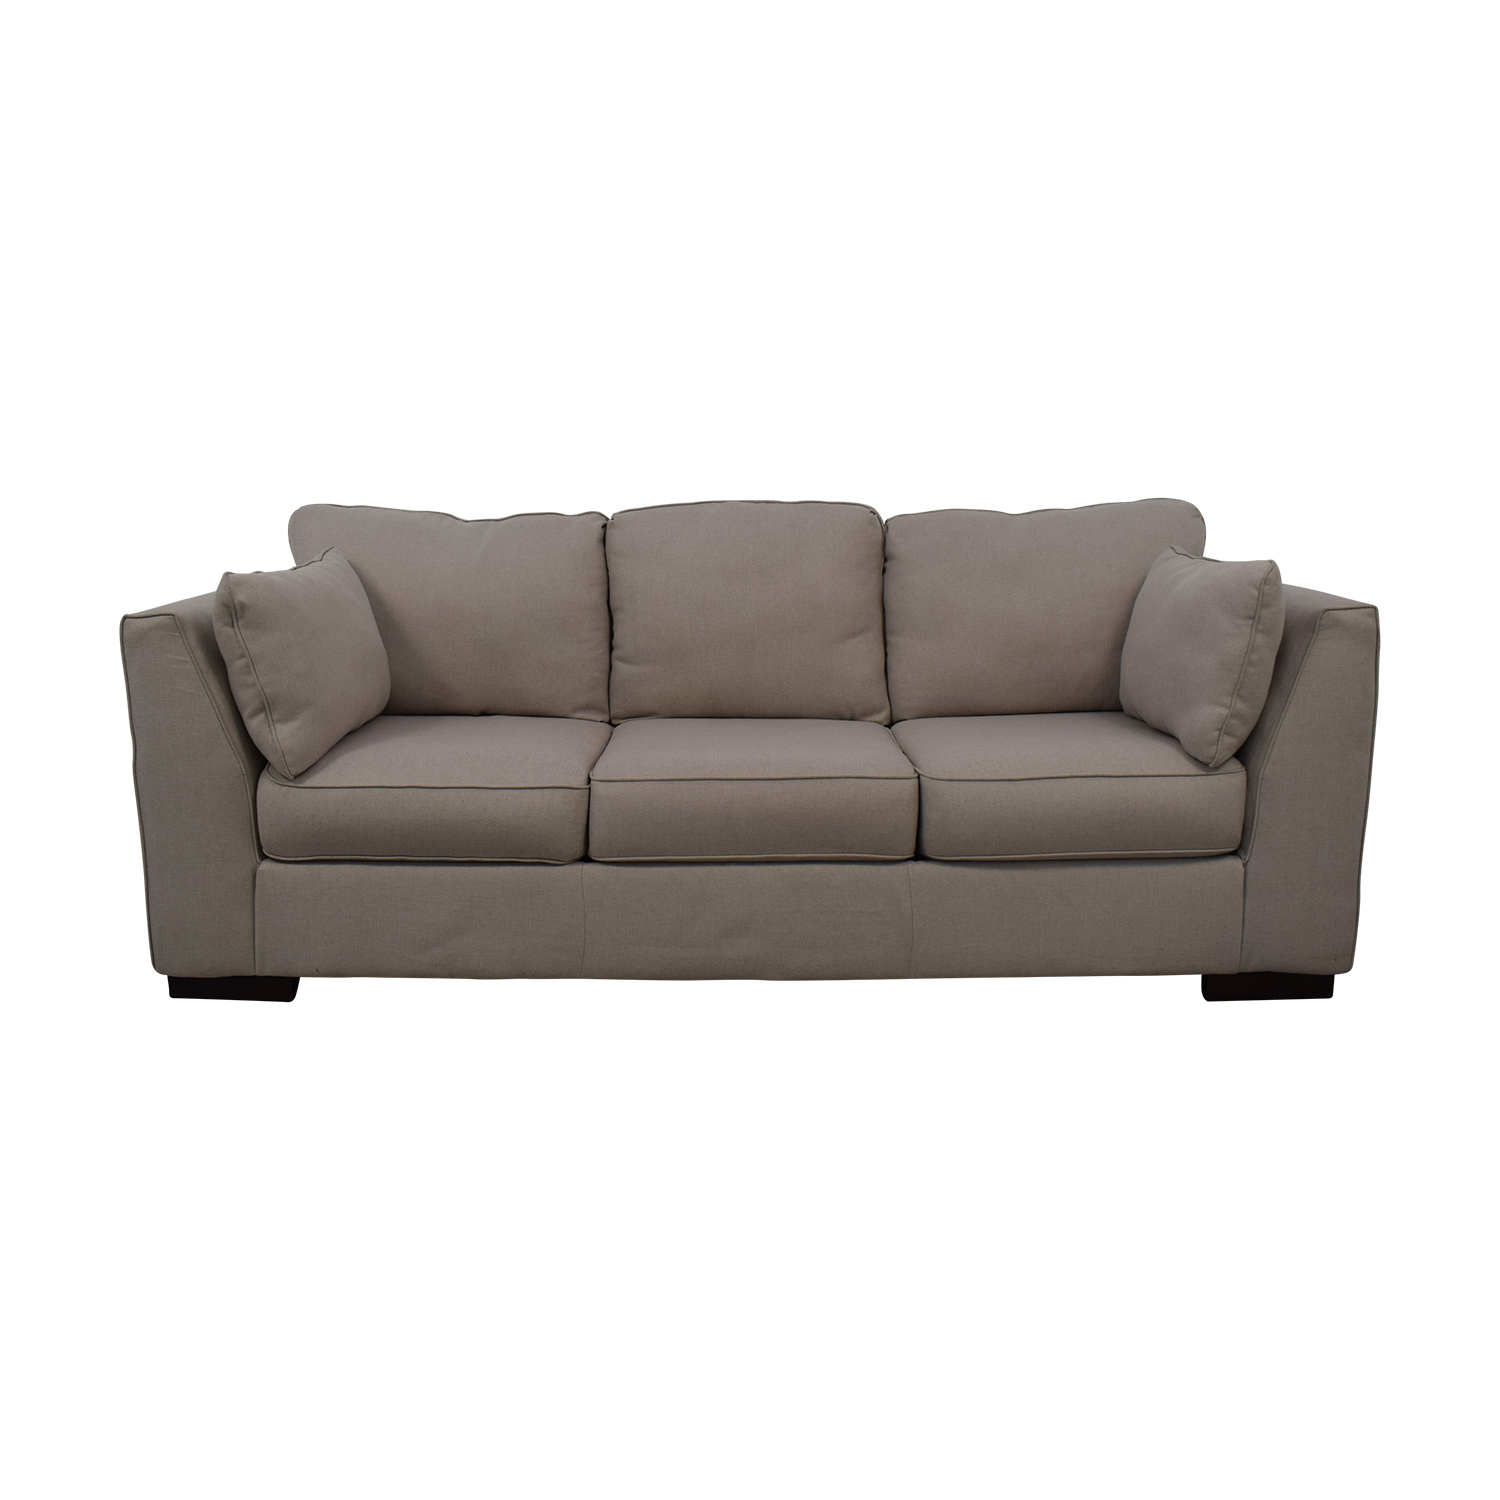 Ashley Furniture Neutral Three-Seat Sofa sale